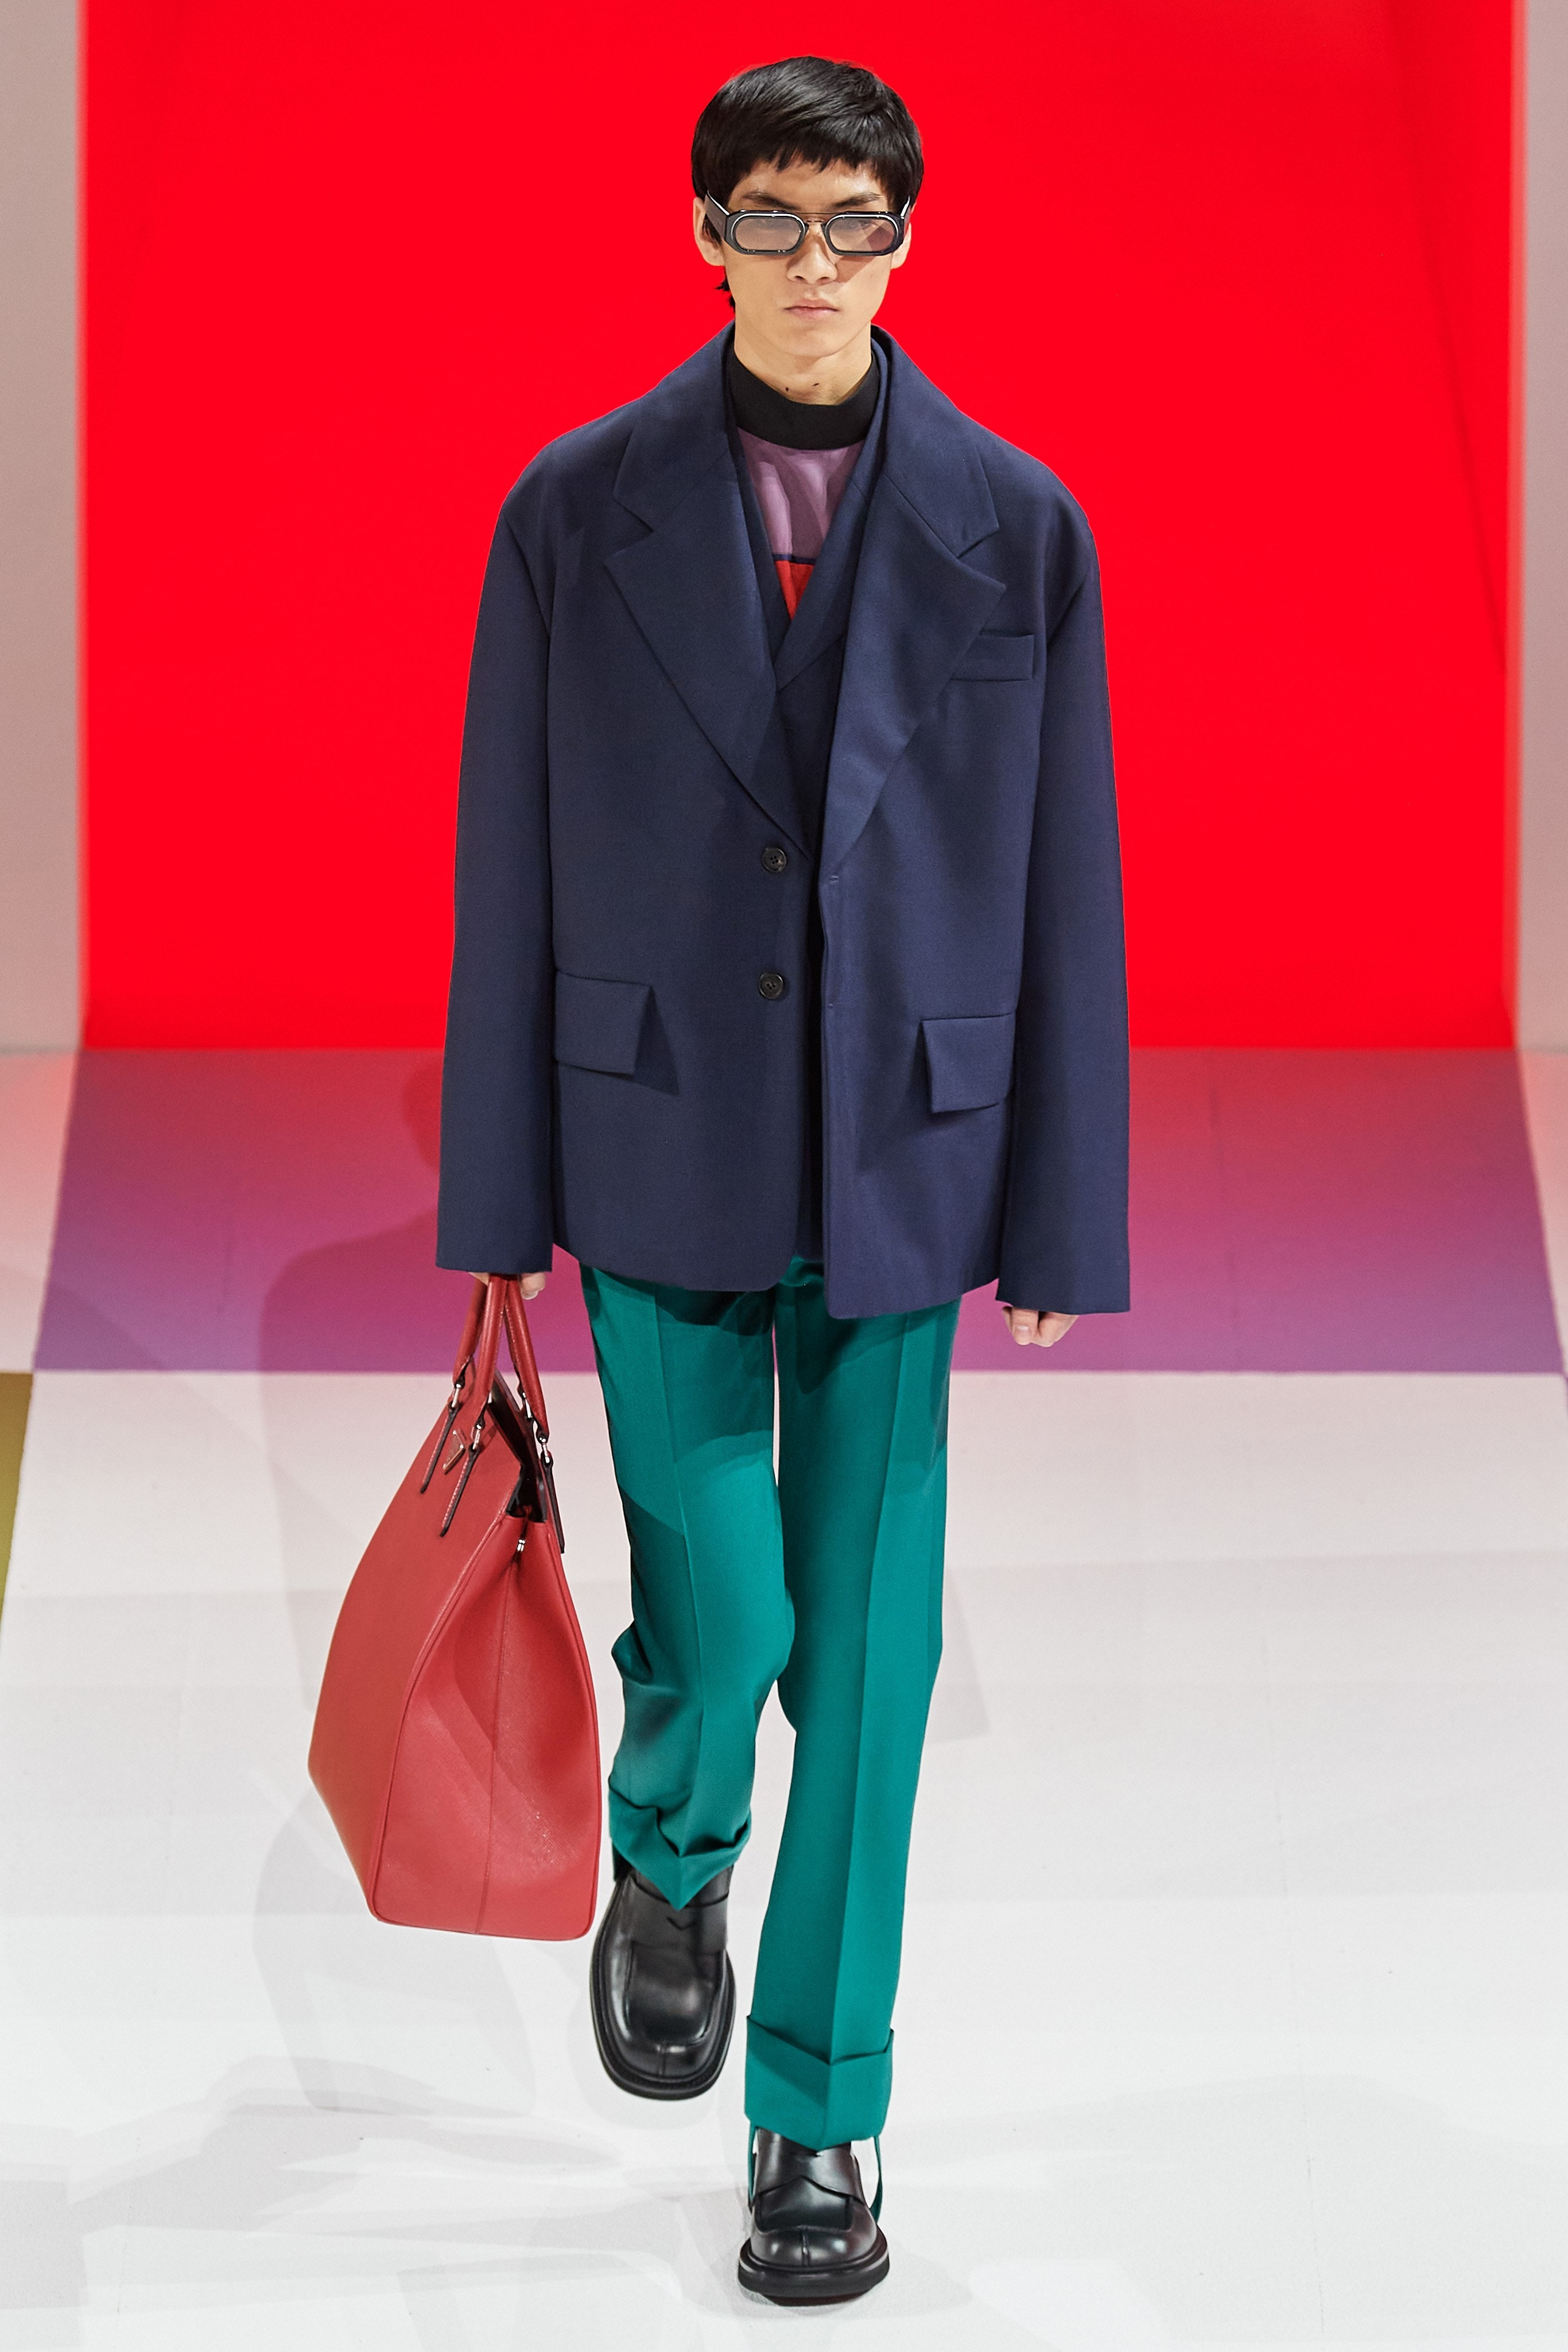 A Look at the Prada Fall 2020 Menswear Collection prada fall 2020 A Look at the Prada Fall 2020 Menswear Collection FIO2163